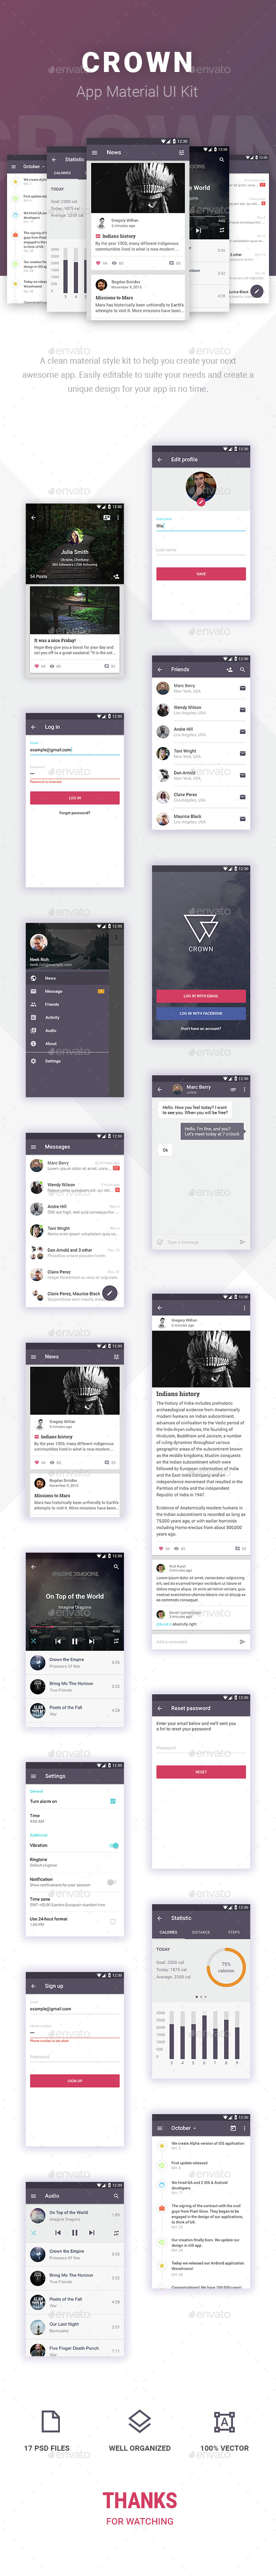 Crown Android Material UI Kit - User Interfaces Web Elements